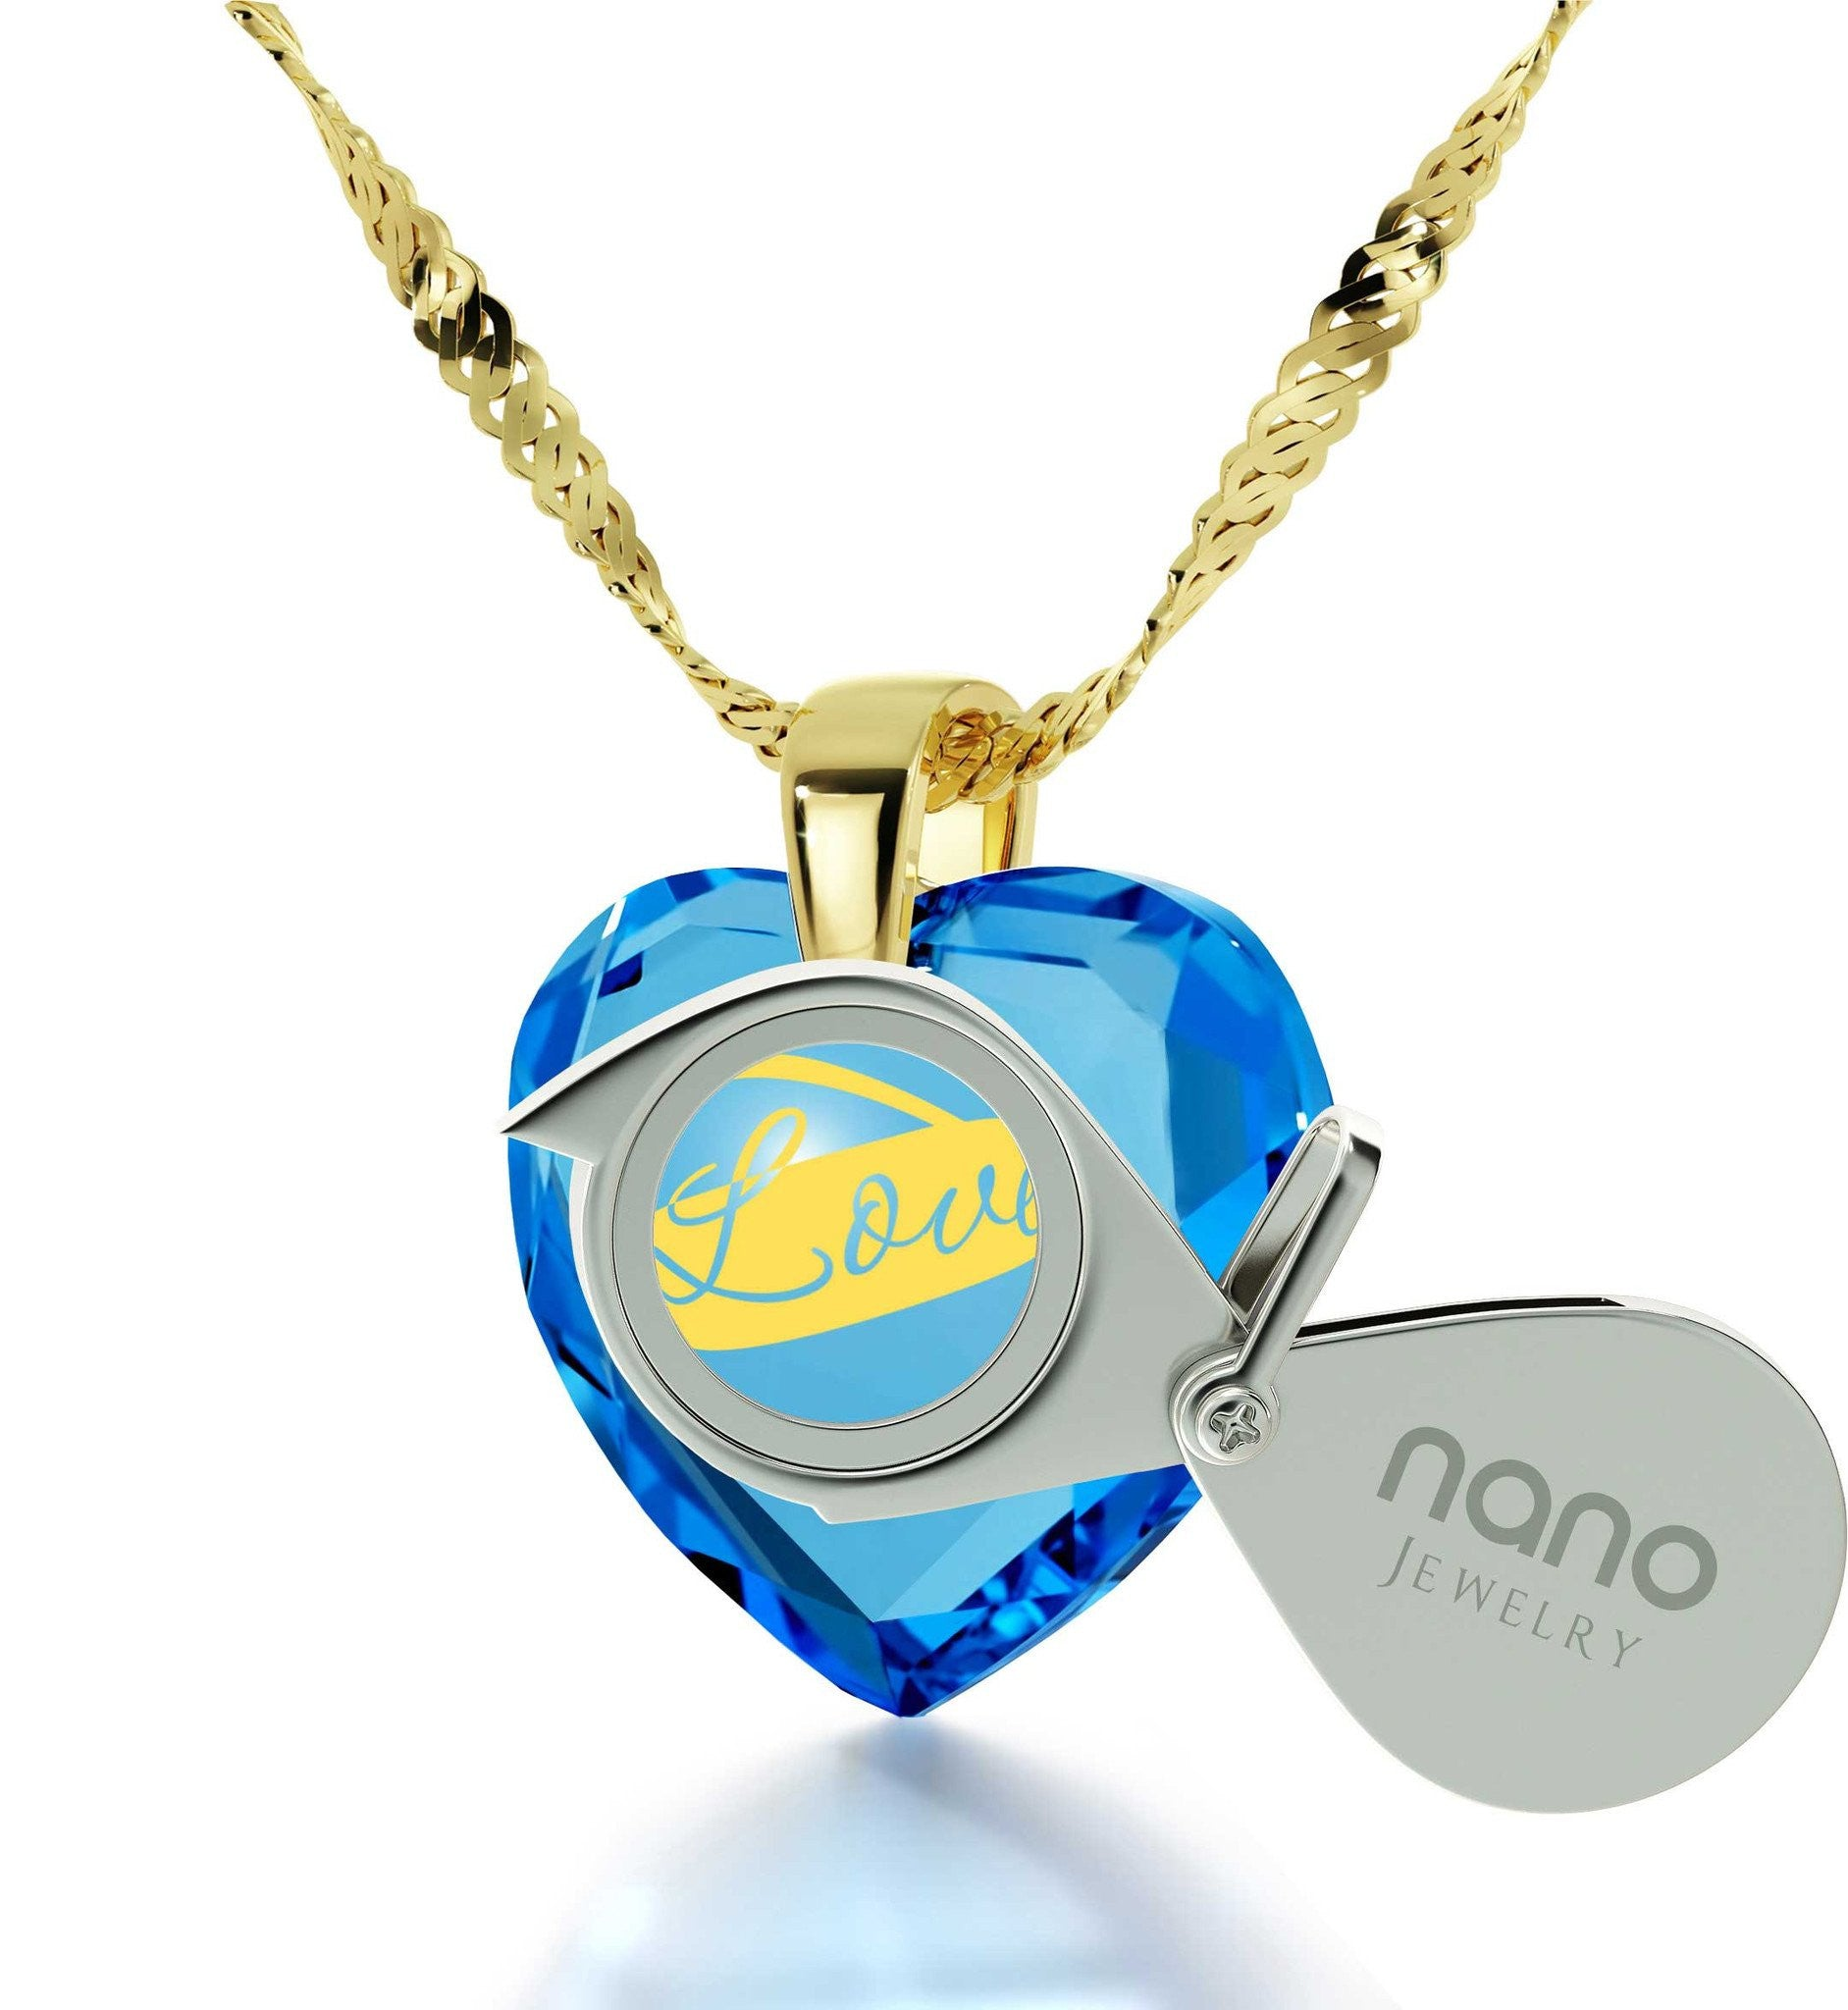 Best Christmas Present for Girlfriend, Blue Topaz, Gold Filled Jewelry, Romantic Gifts for Wife, by Nano